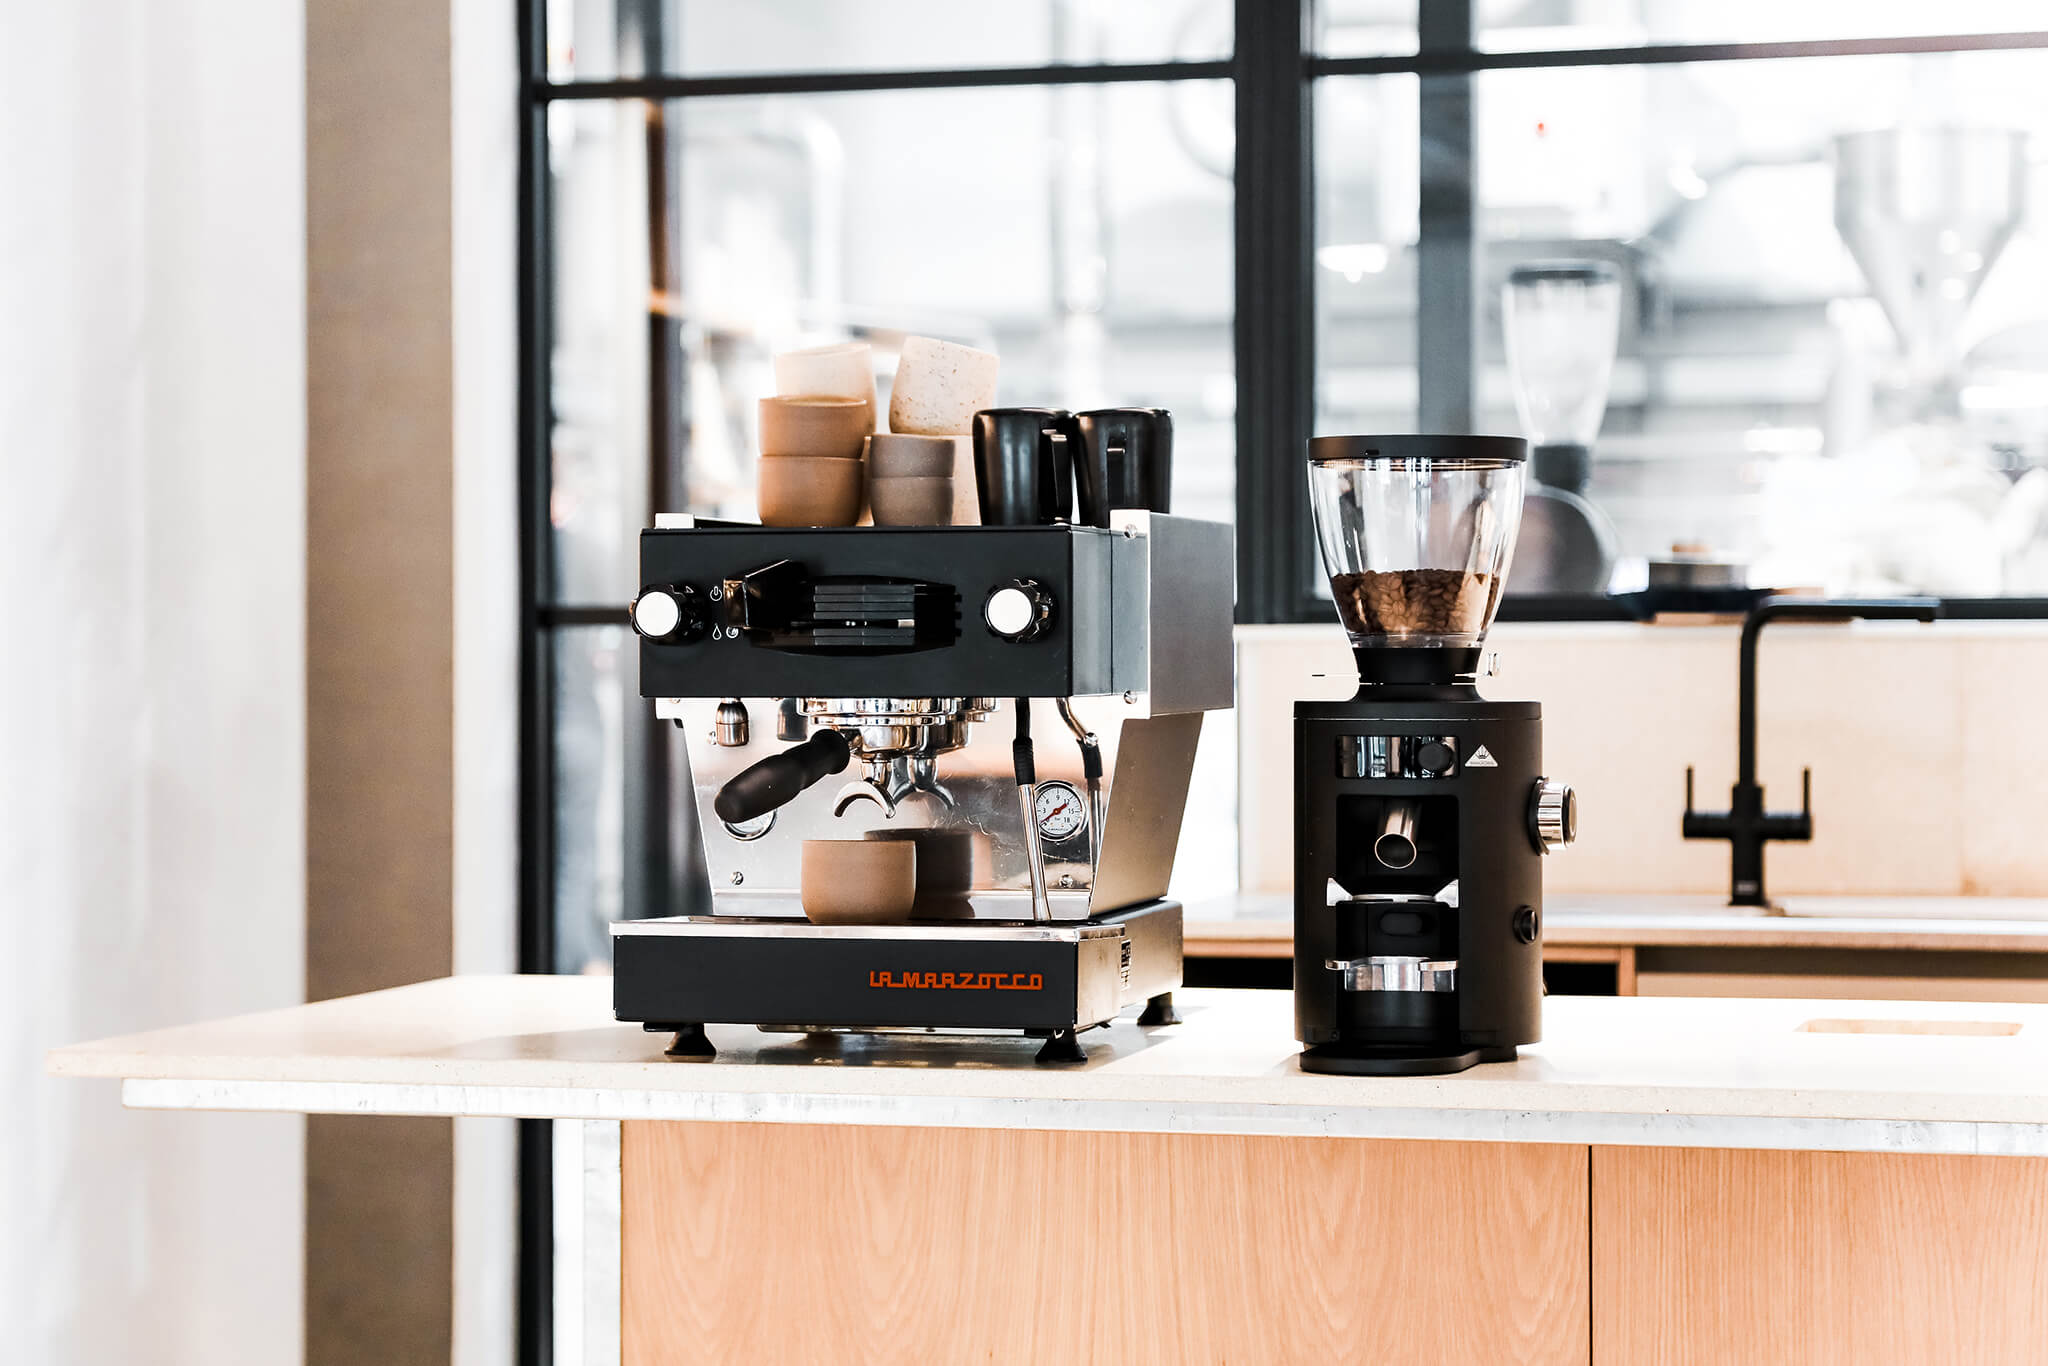 A home espresso machine and home coffee grinder sitting on a bar